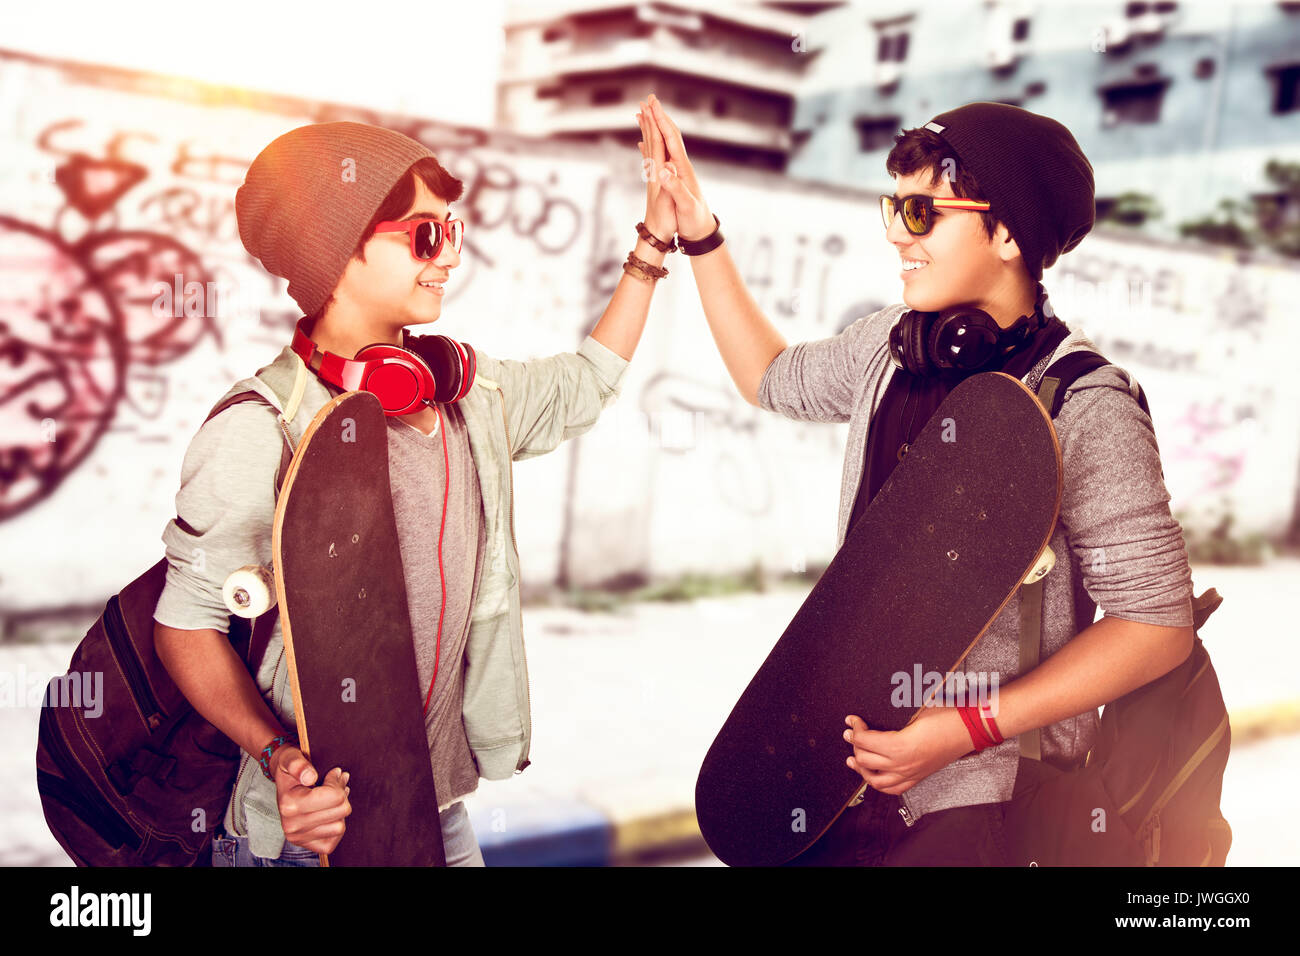 Happy teen boys outdoors, two stylish teenagers with skateboards in hands saluting each other, modern lifestyle, hipster culture, active summer holida - Stock Image